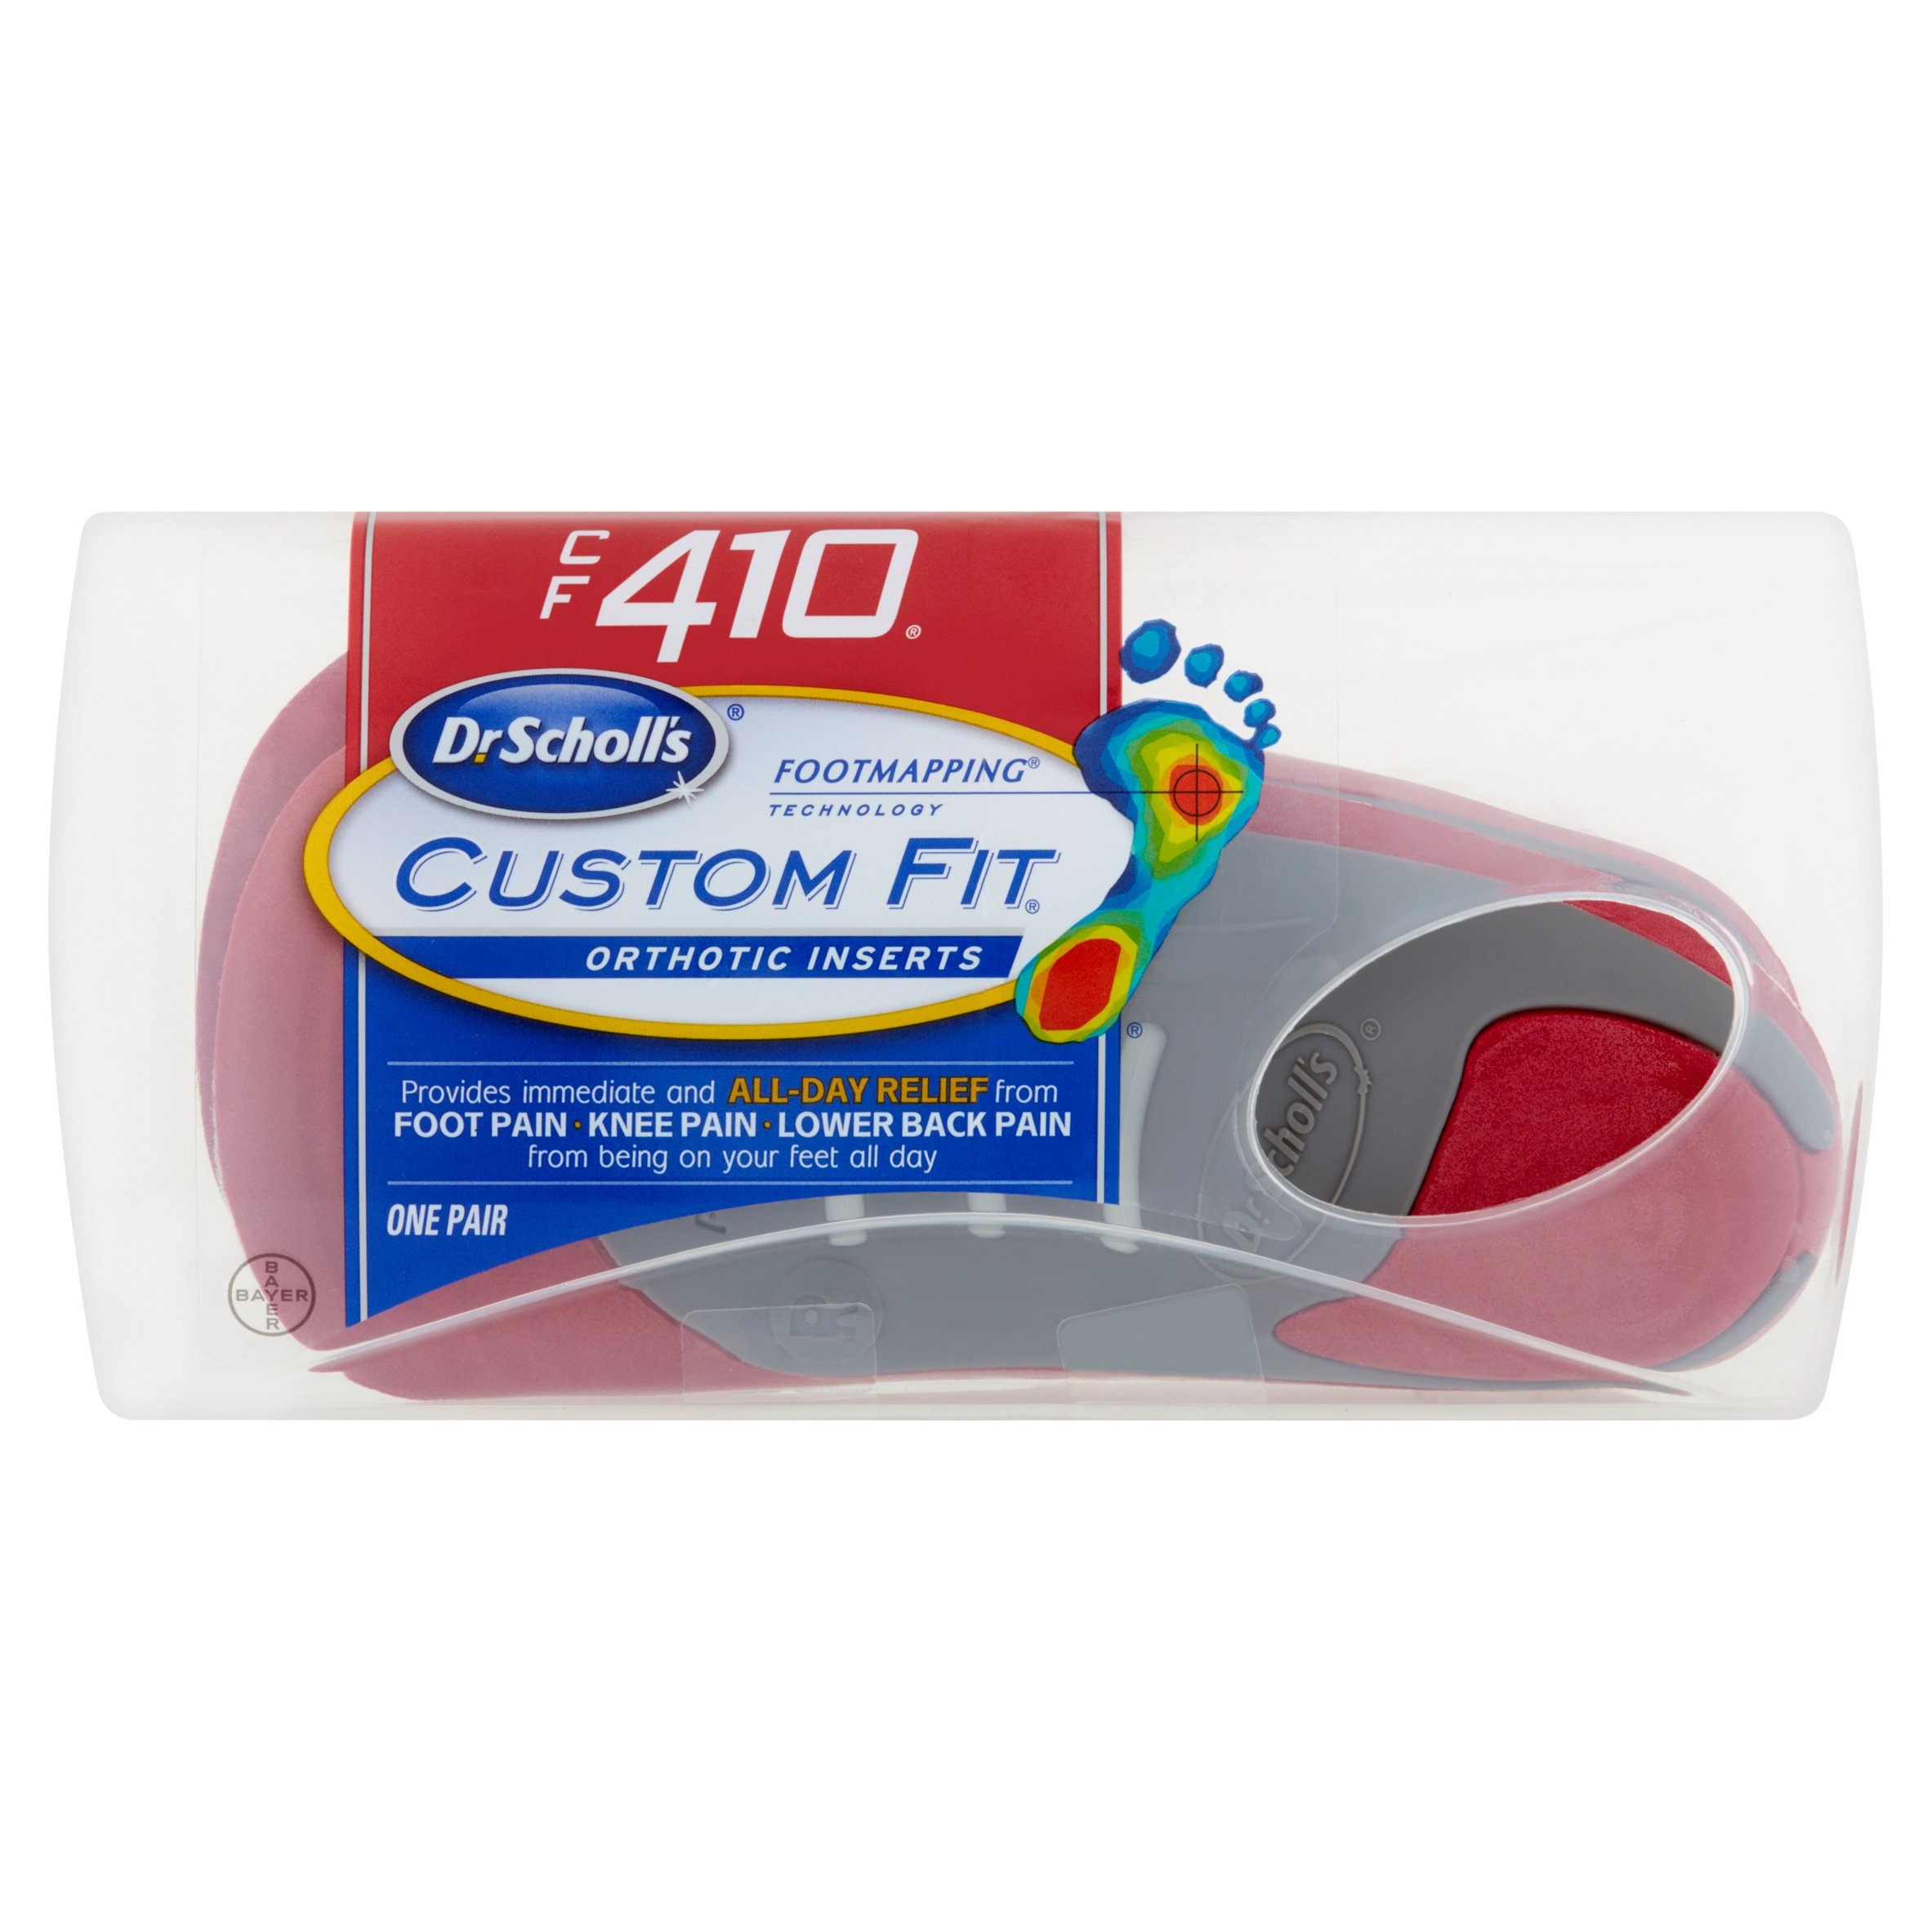 Dr. Scholl's Custom Fit Orthotics, CF410 by Bayer HealthCare LLC